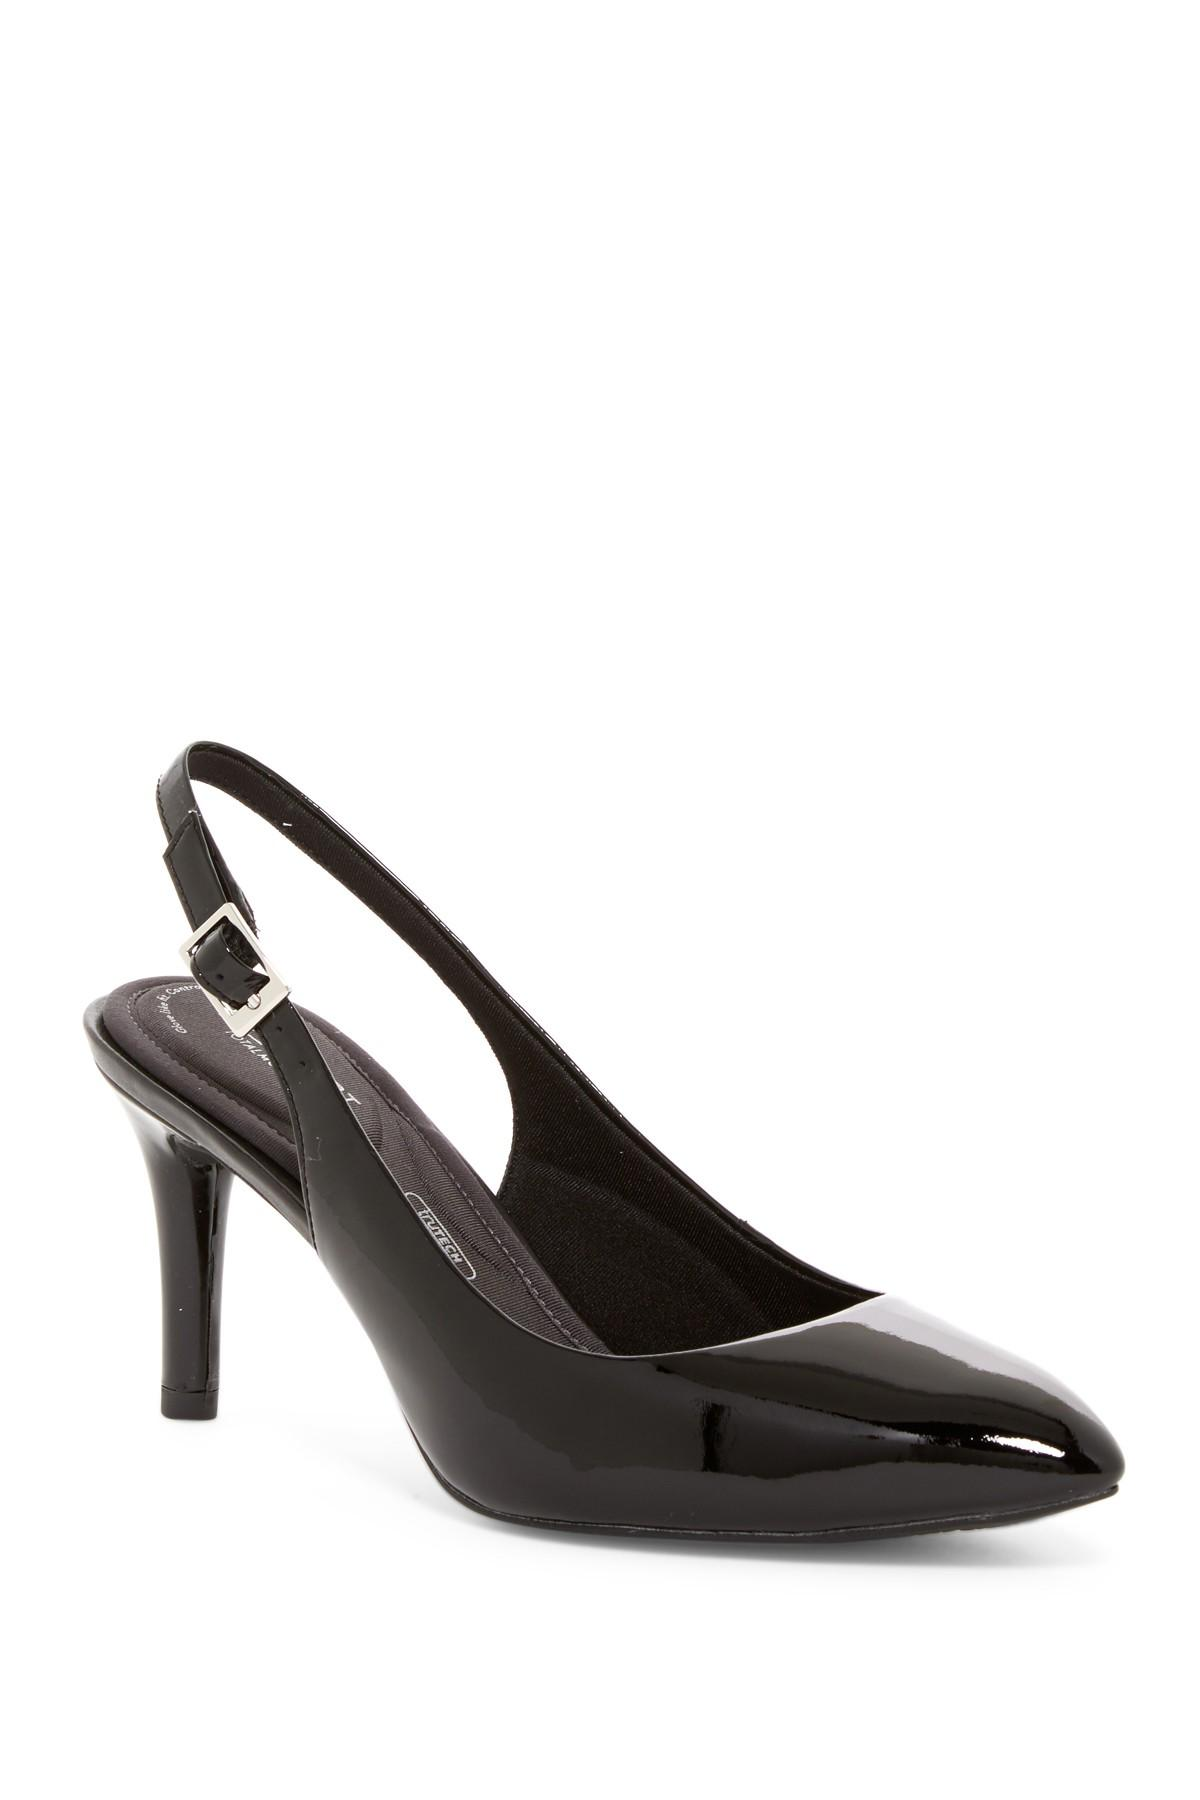 67f5c7c66fea Lyst - Rockport Total Motion Pointed Toe Slingback Pump - Wide Width ...